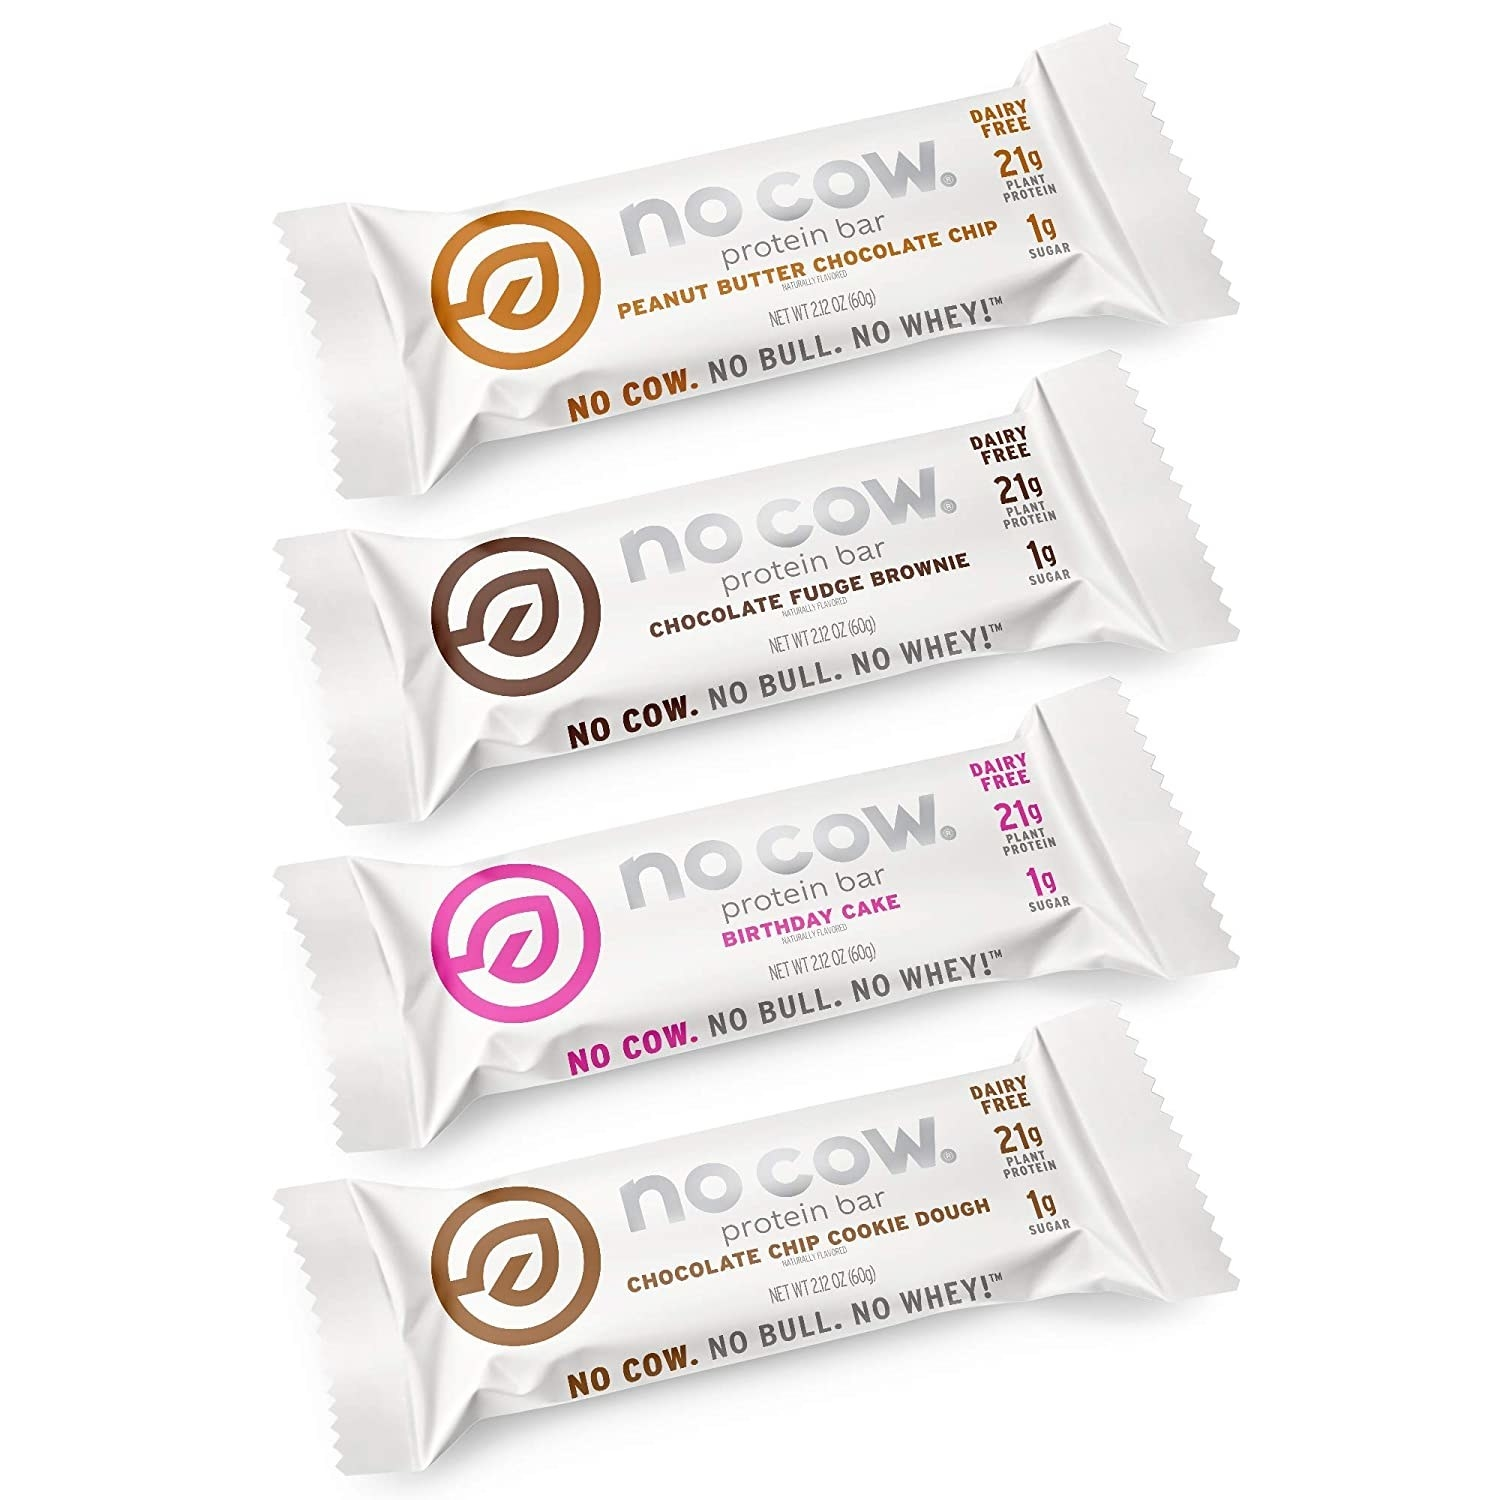 the four flavors of protein bar